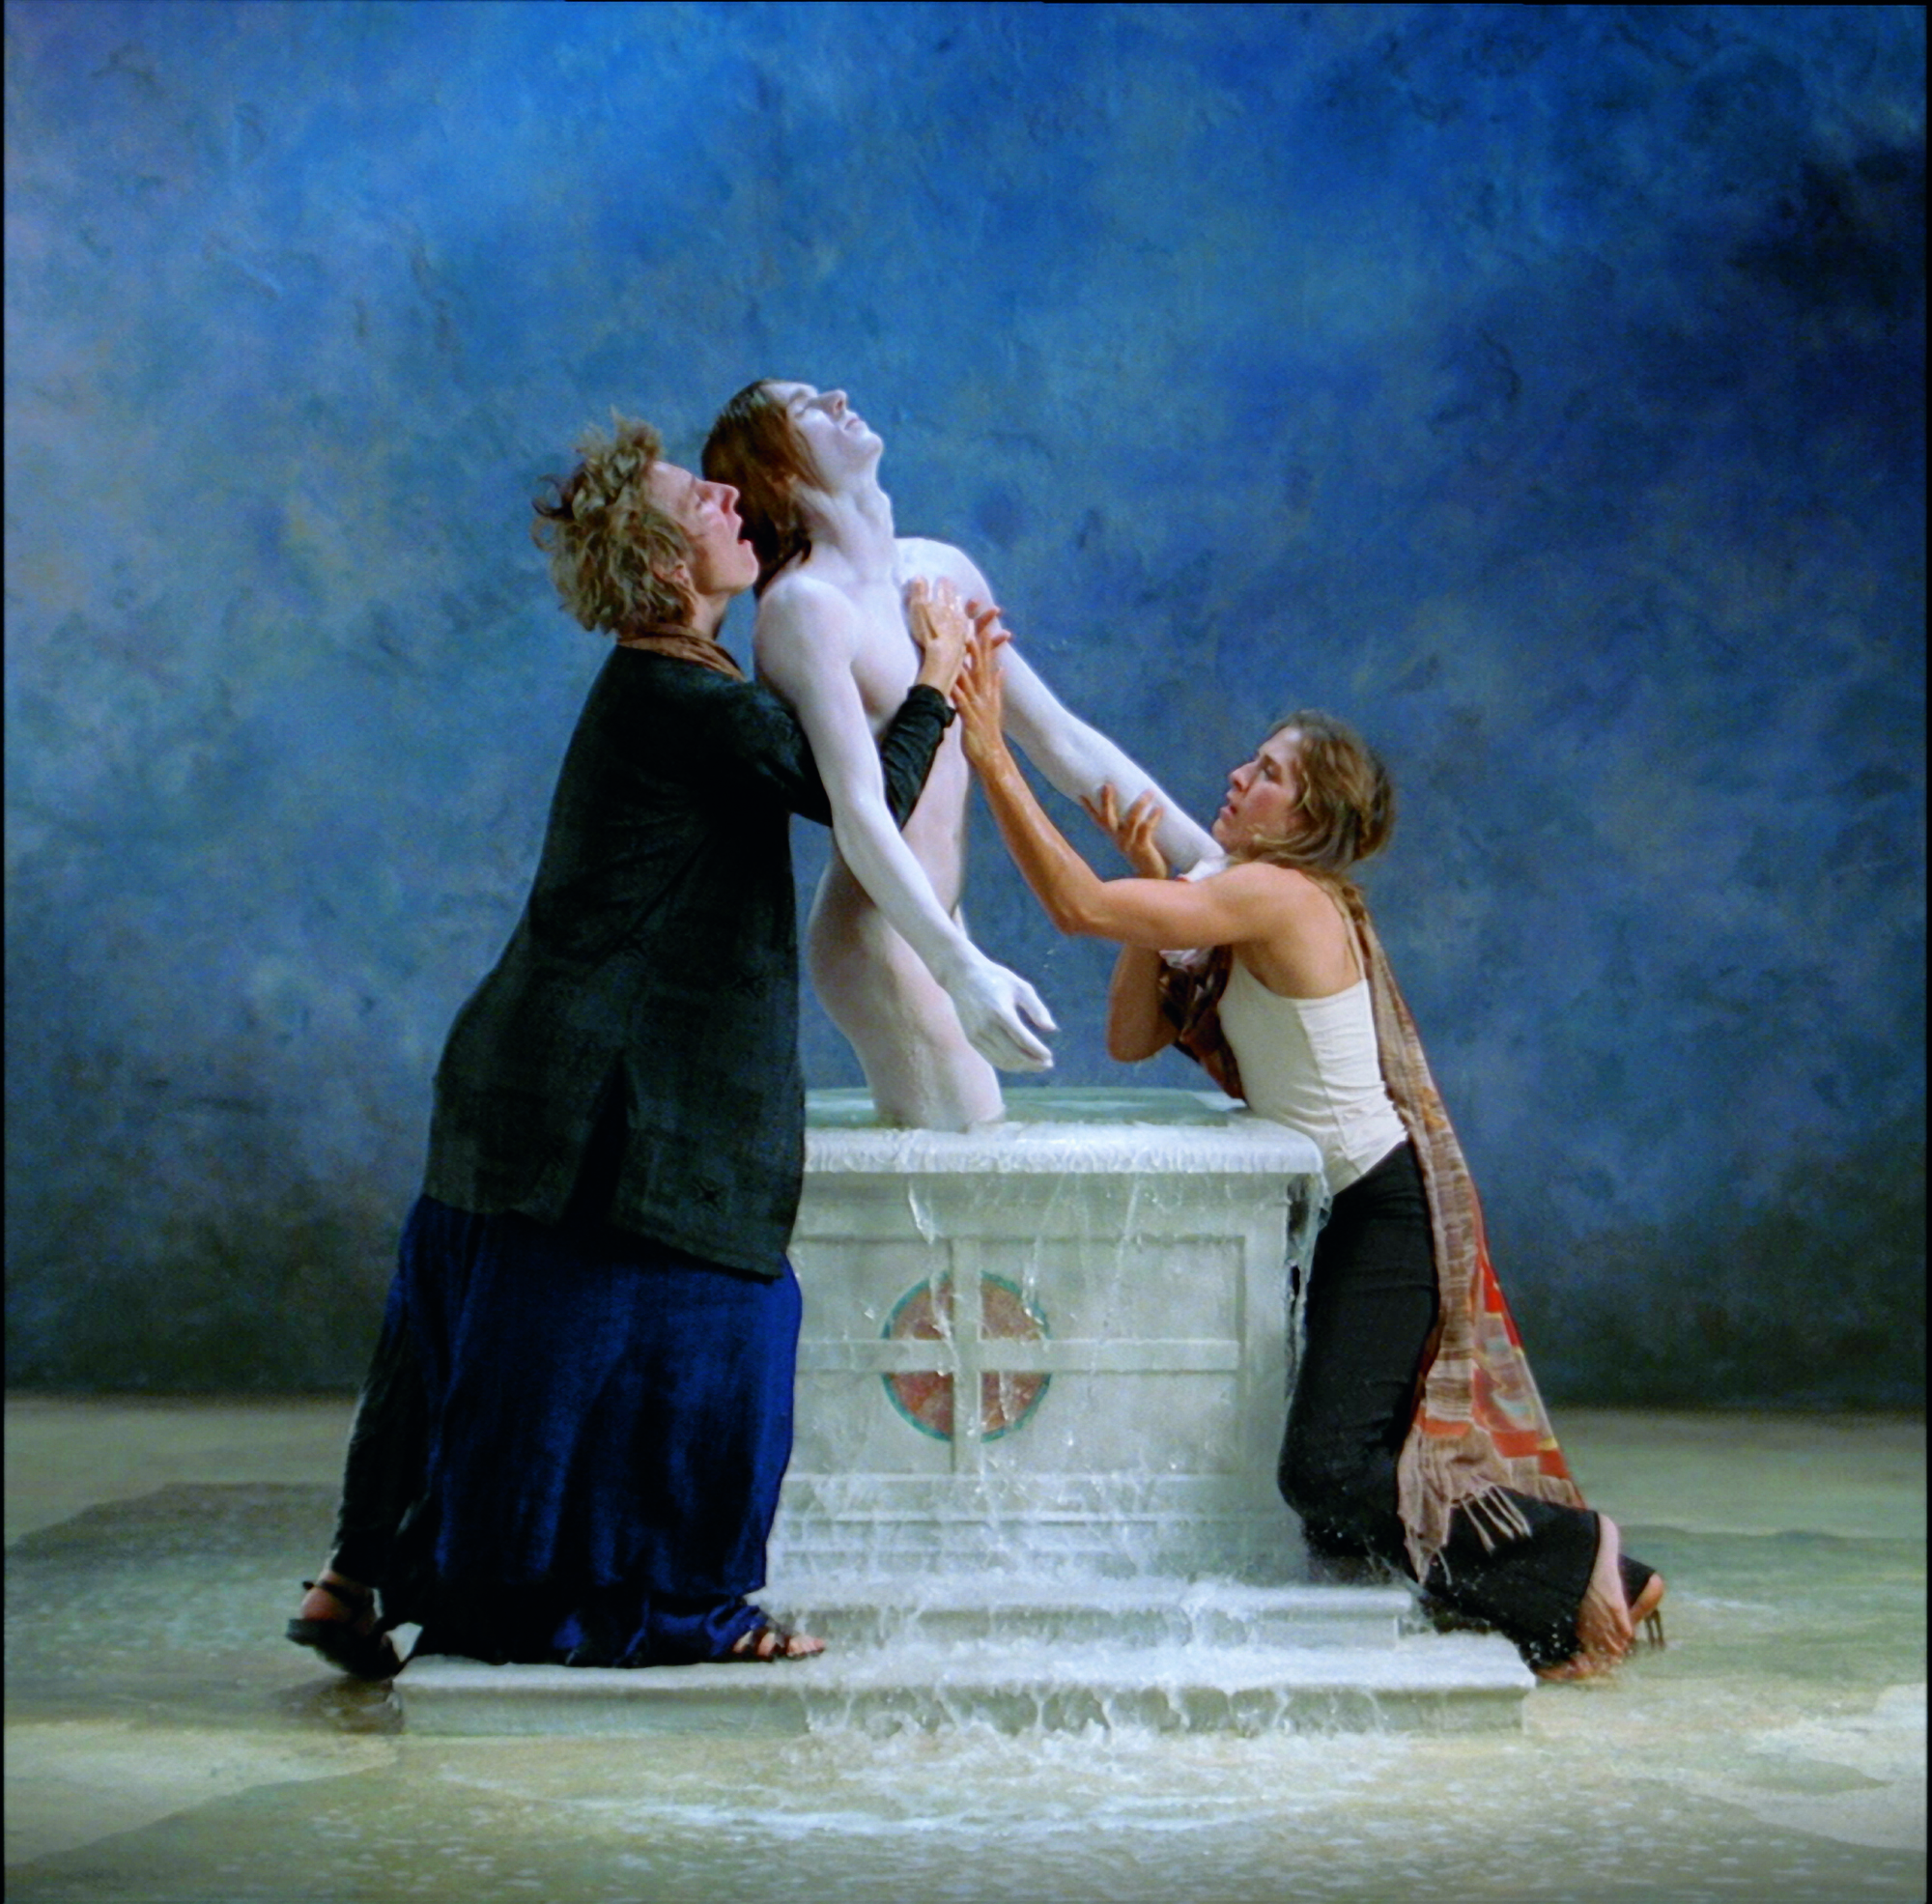 The Bill Viola exhibit in Florence and a short video of The Deluge